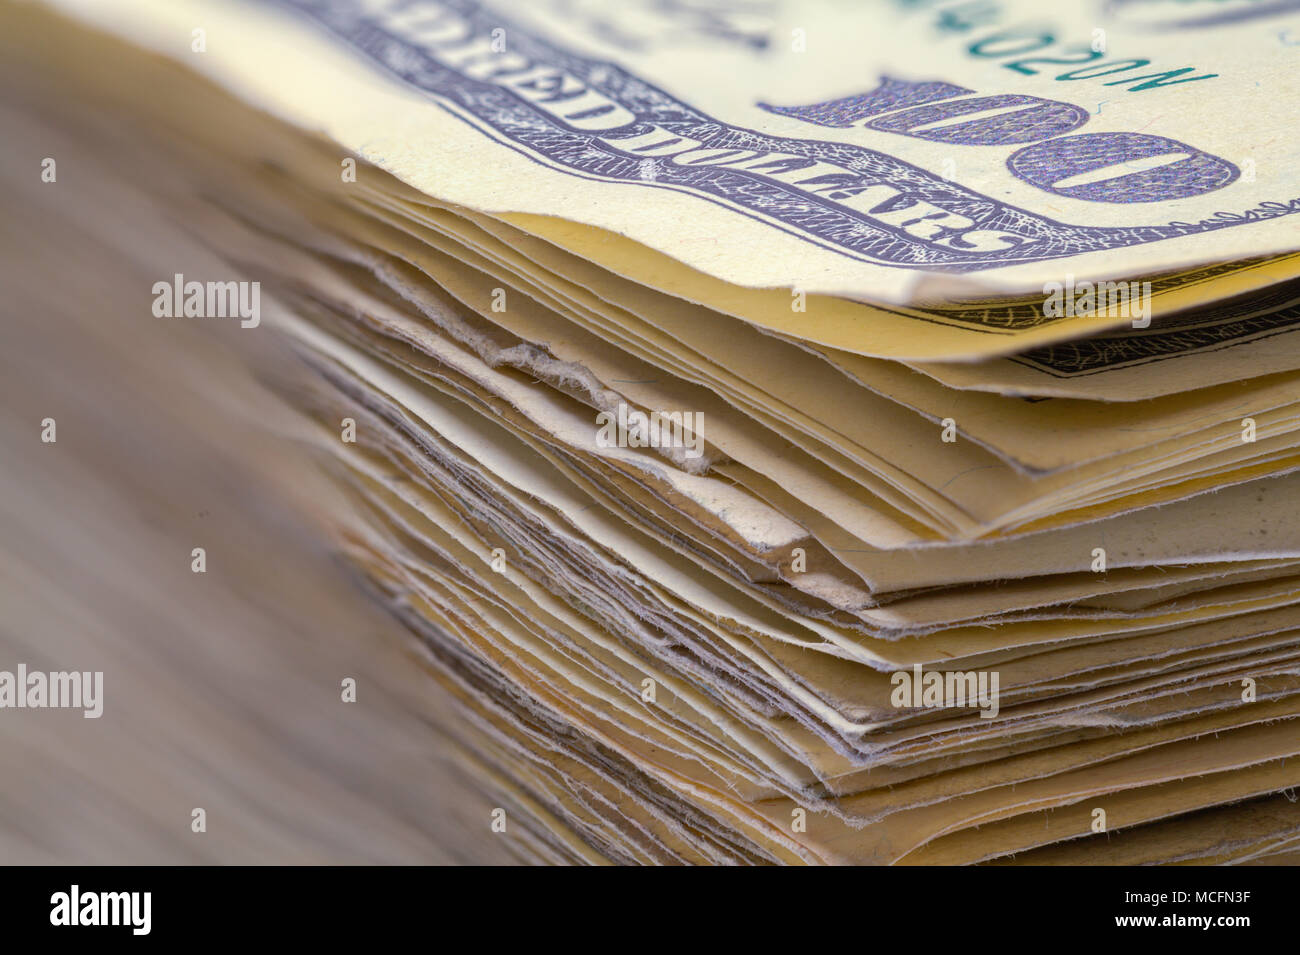 Close Up View of a Stack of Hundred Dollar Bills. - Stock Image